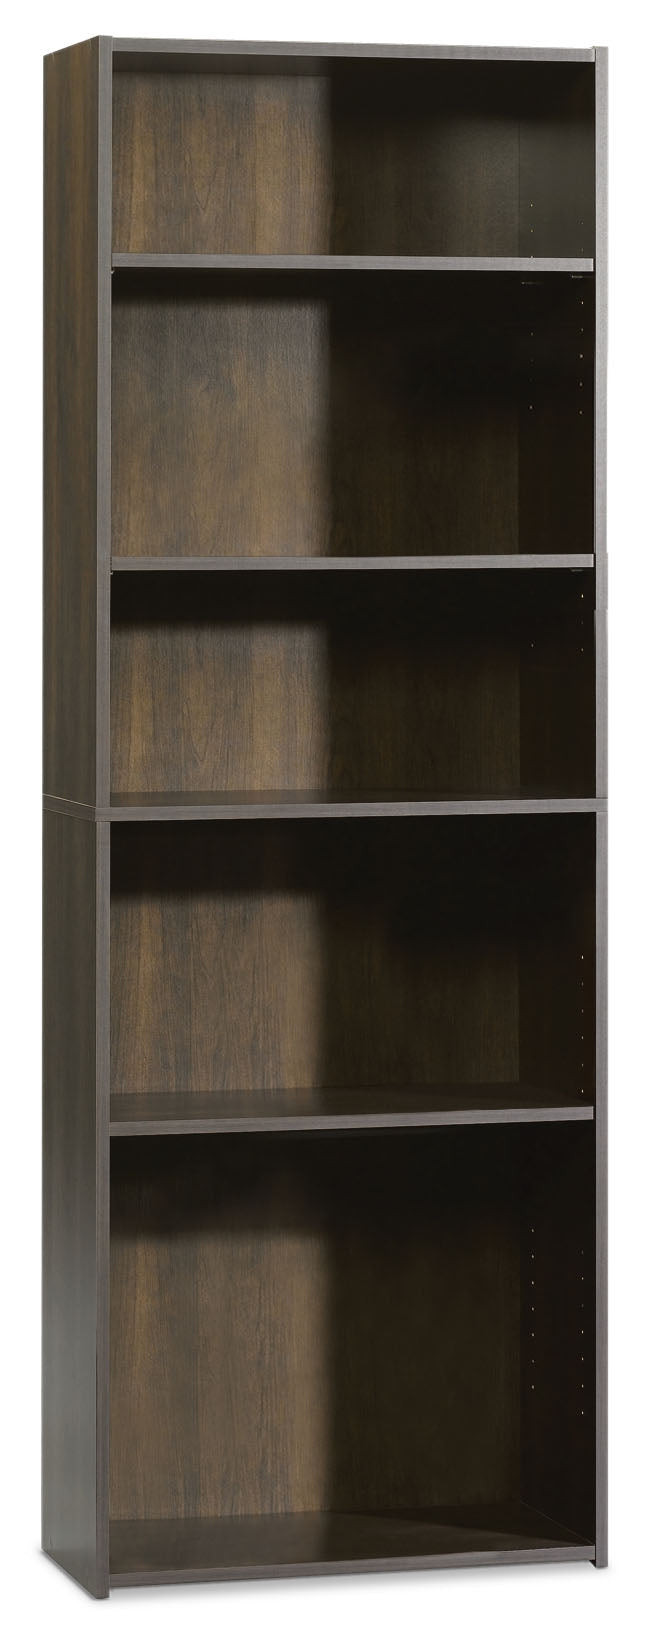 Boston 5-Shelf Bookcase|Bibliothèque Boston à 5 tablettes